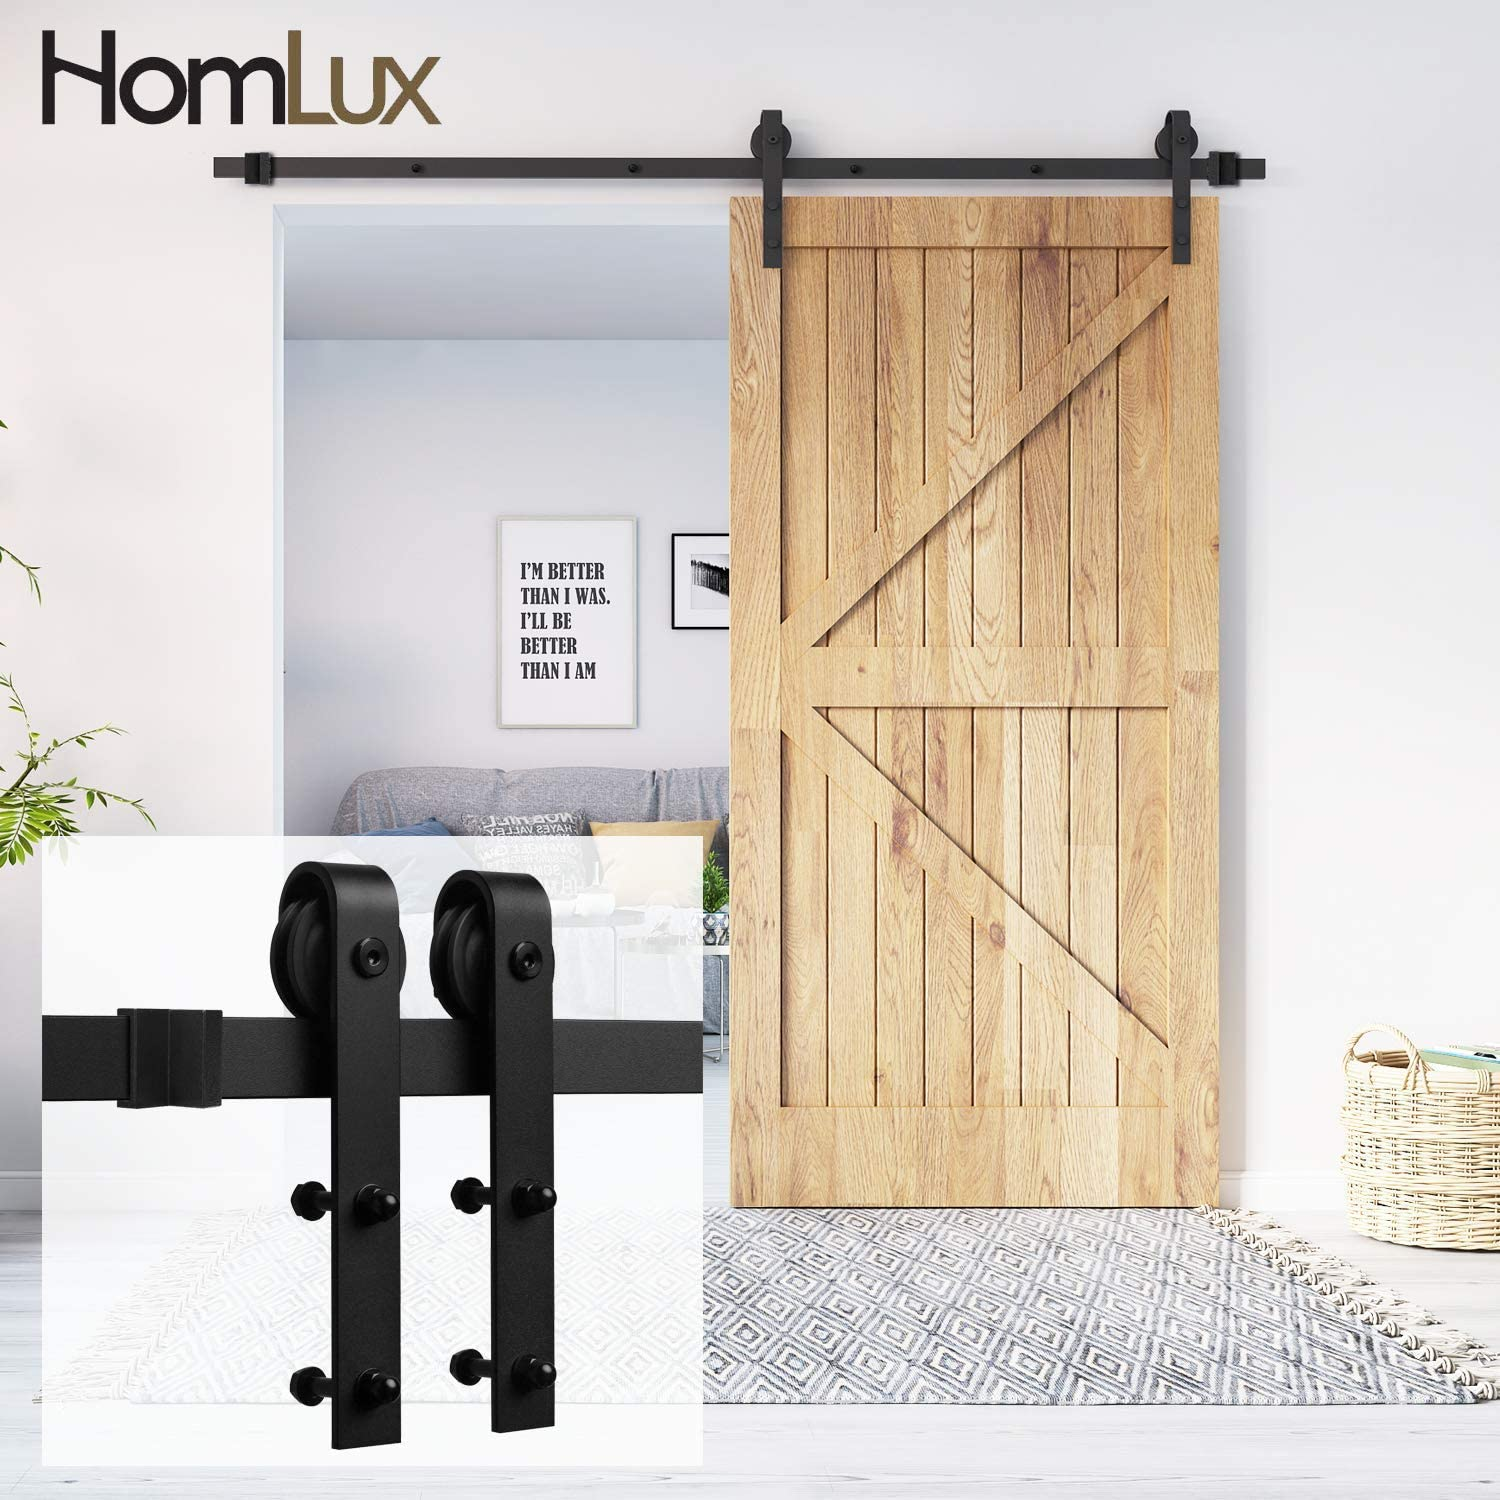 "Homlux 8ft Heavy Duty Sturdy Sliding Barn Door Hardware Kit Single Door - Smoothly and Quietly - Simple and Easy to Install - Fit 1 3/8-1 3/4"" Thickness Door Panel(Black)(J Shape Hangers)"